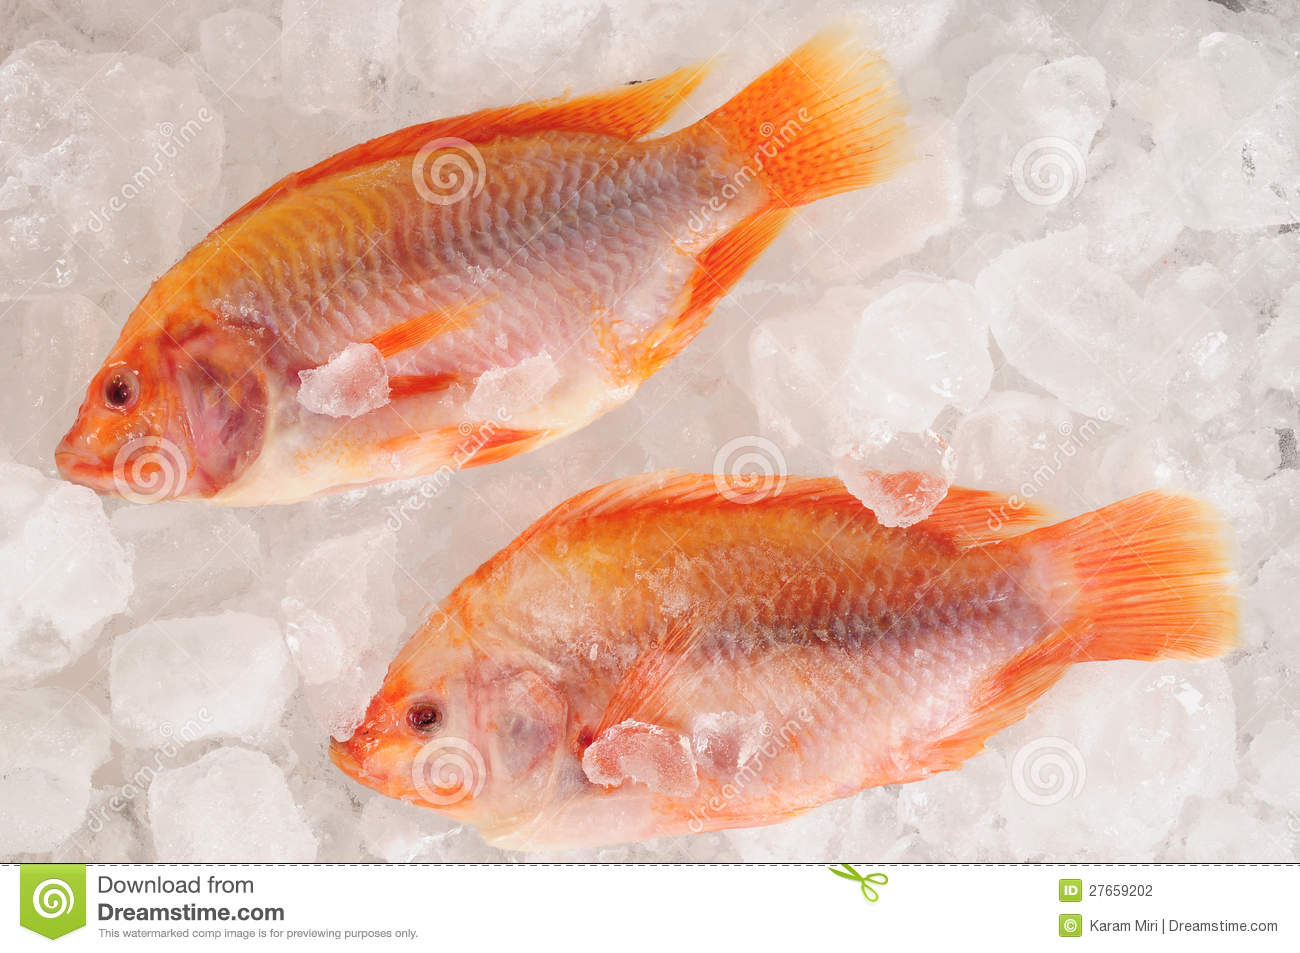 Frozen fish stock photography image 27659202 for Best frozen fish to buy at grocery store